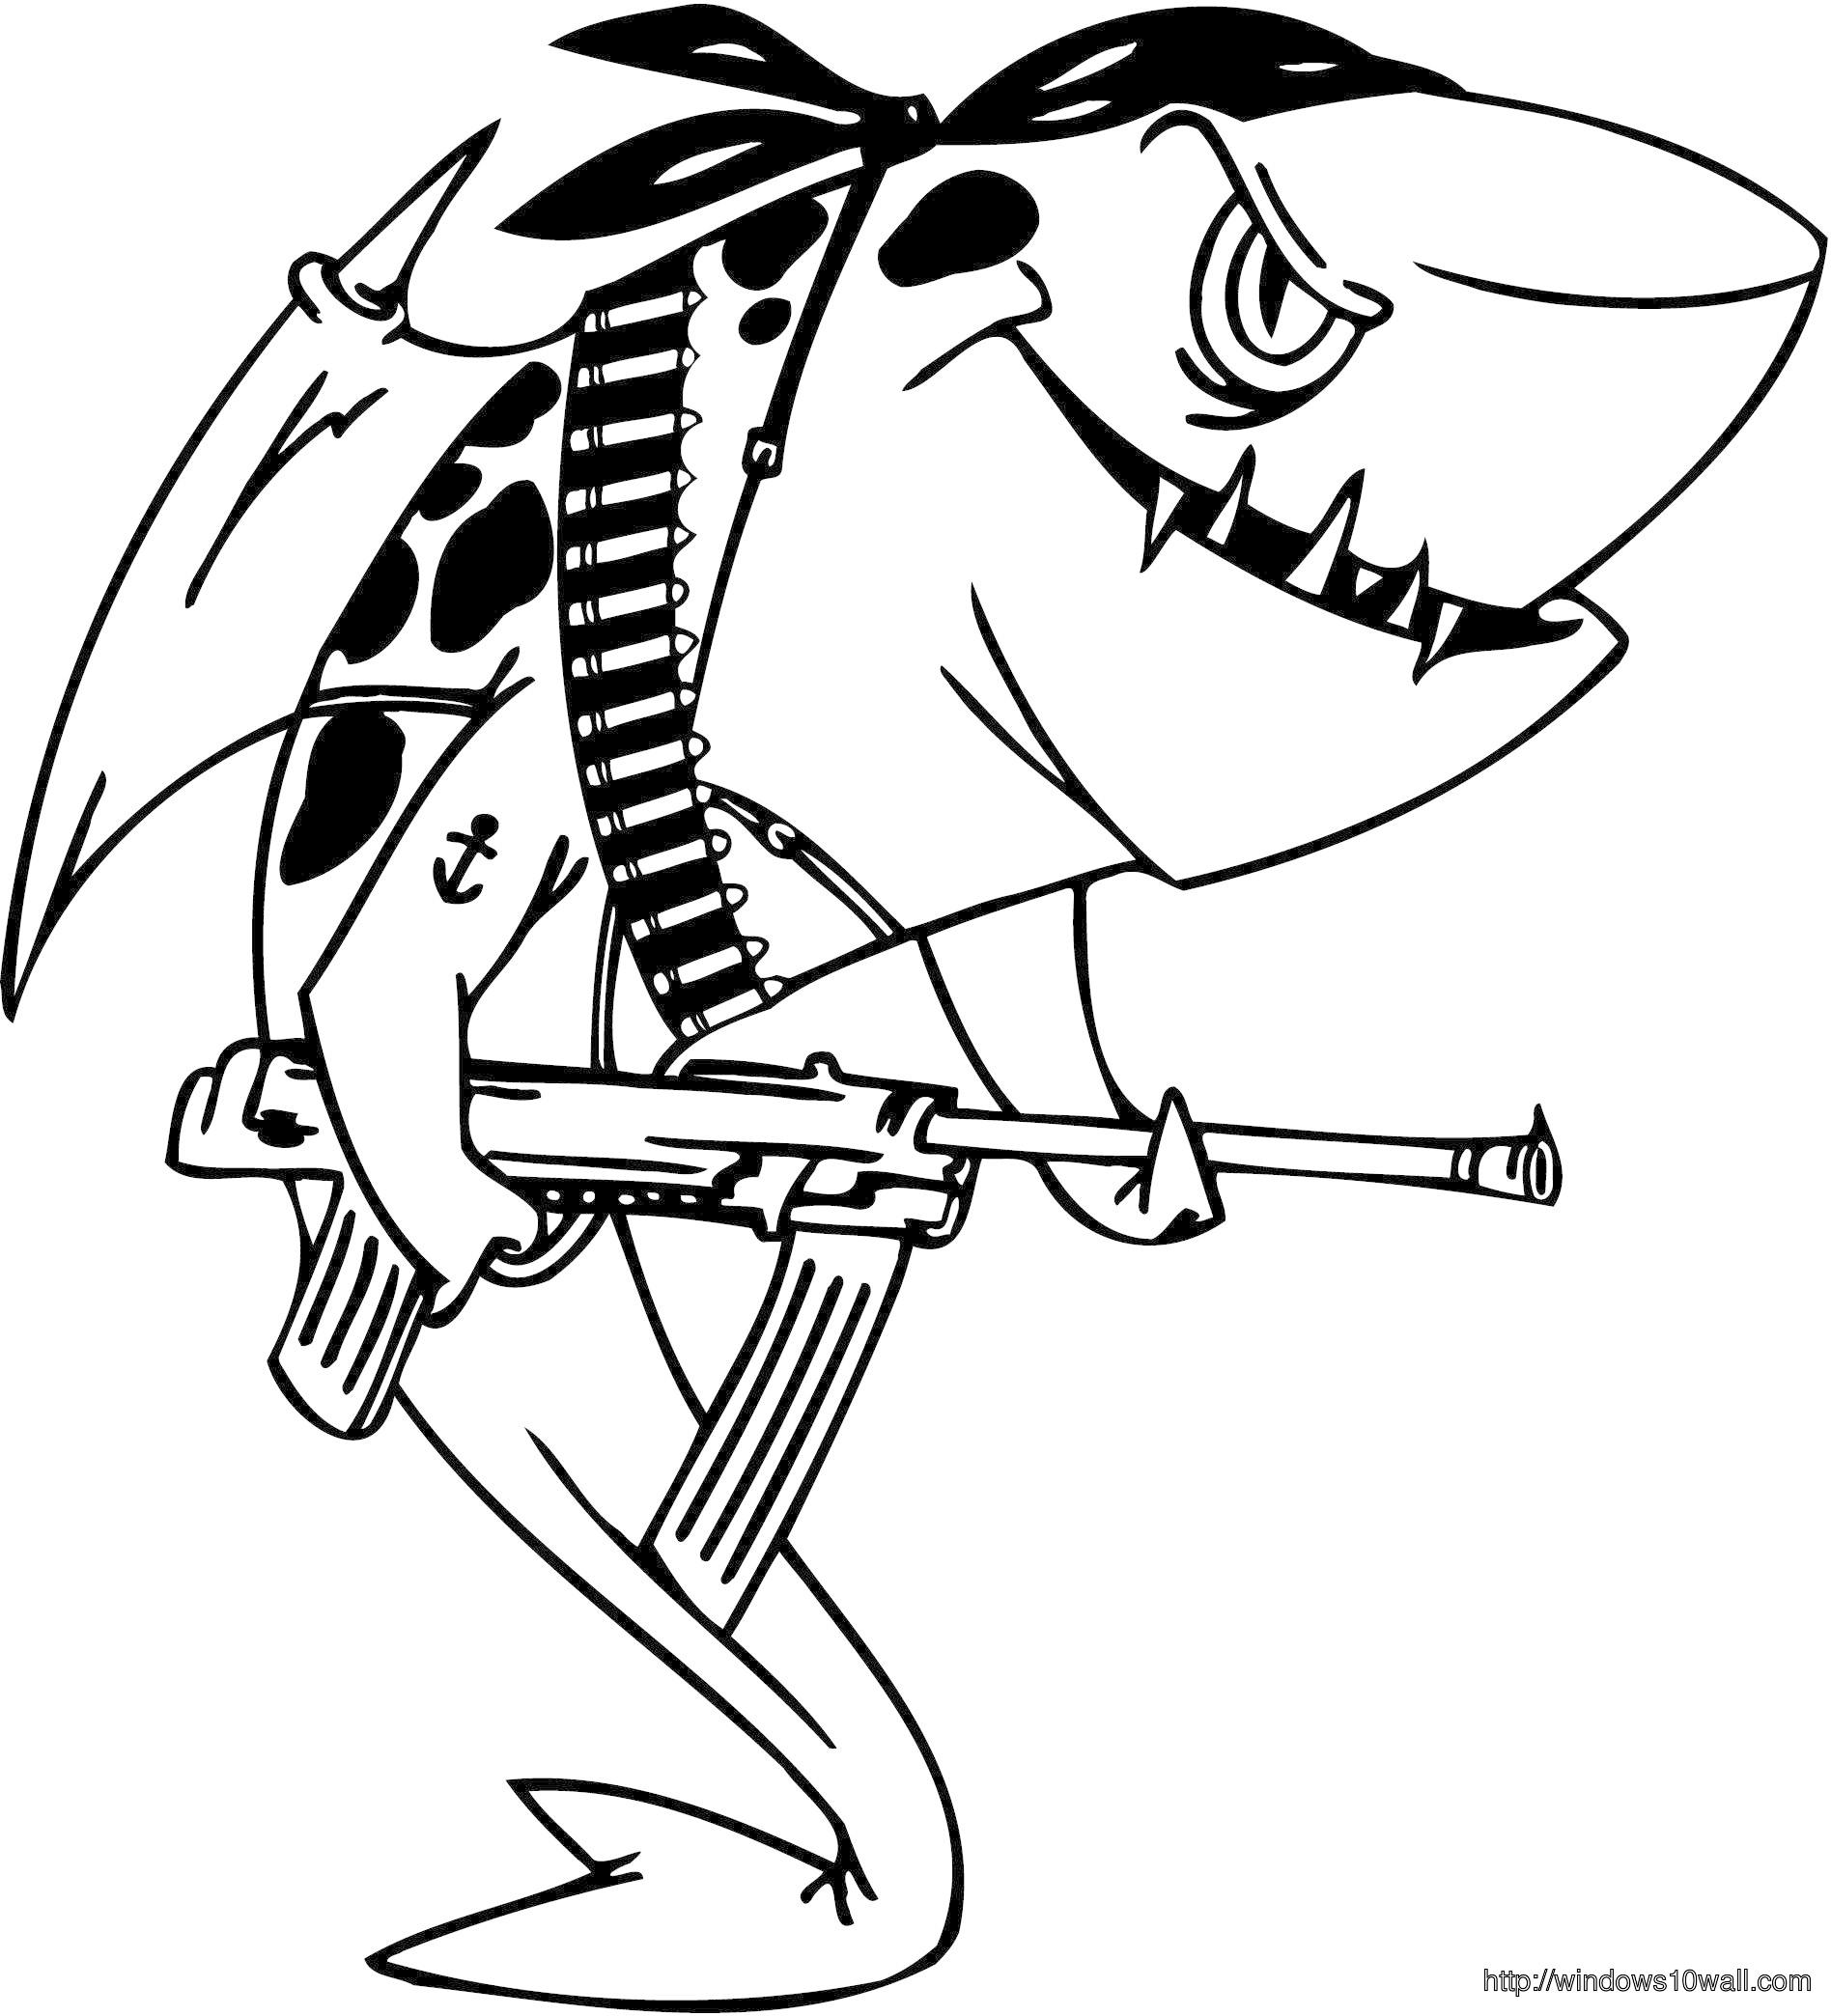 Military Shark Coloring Page for Kids Wallpaper